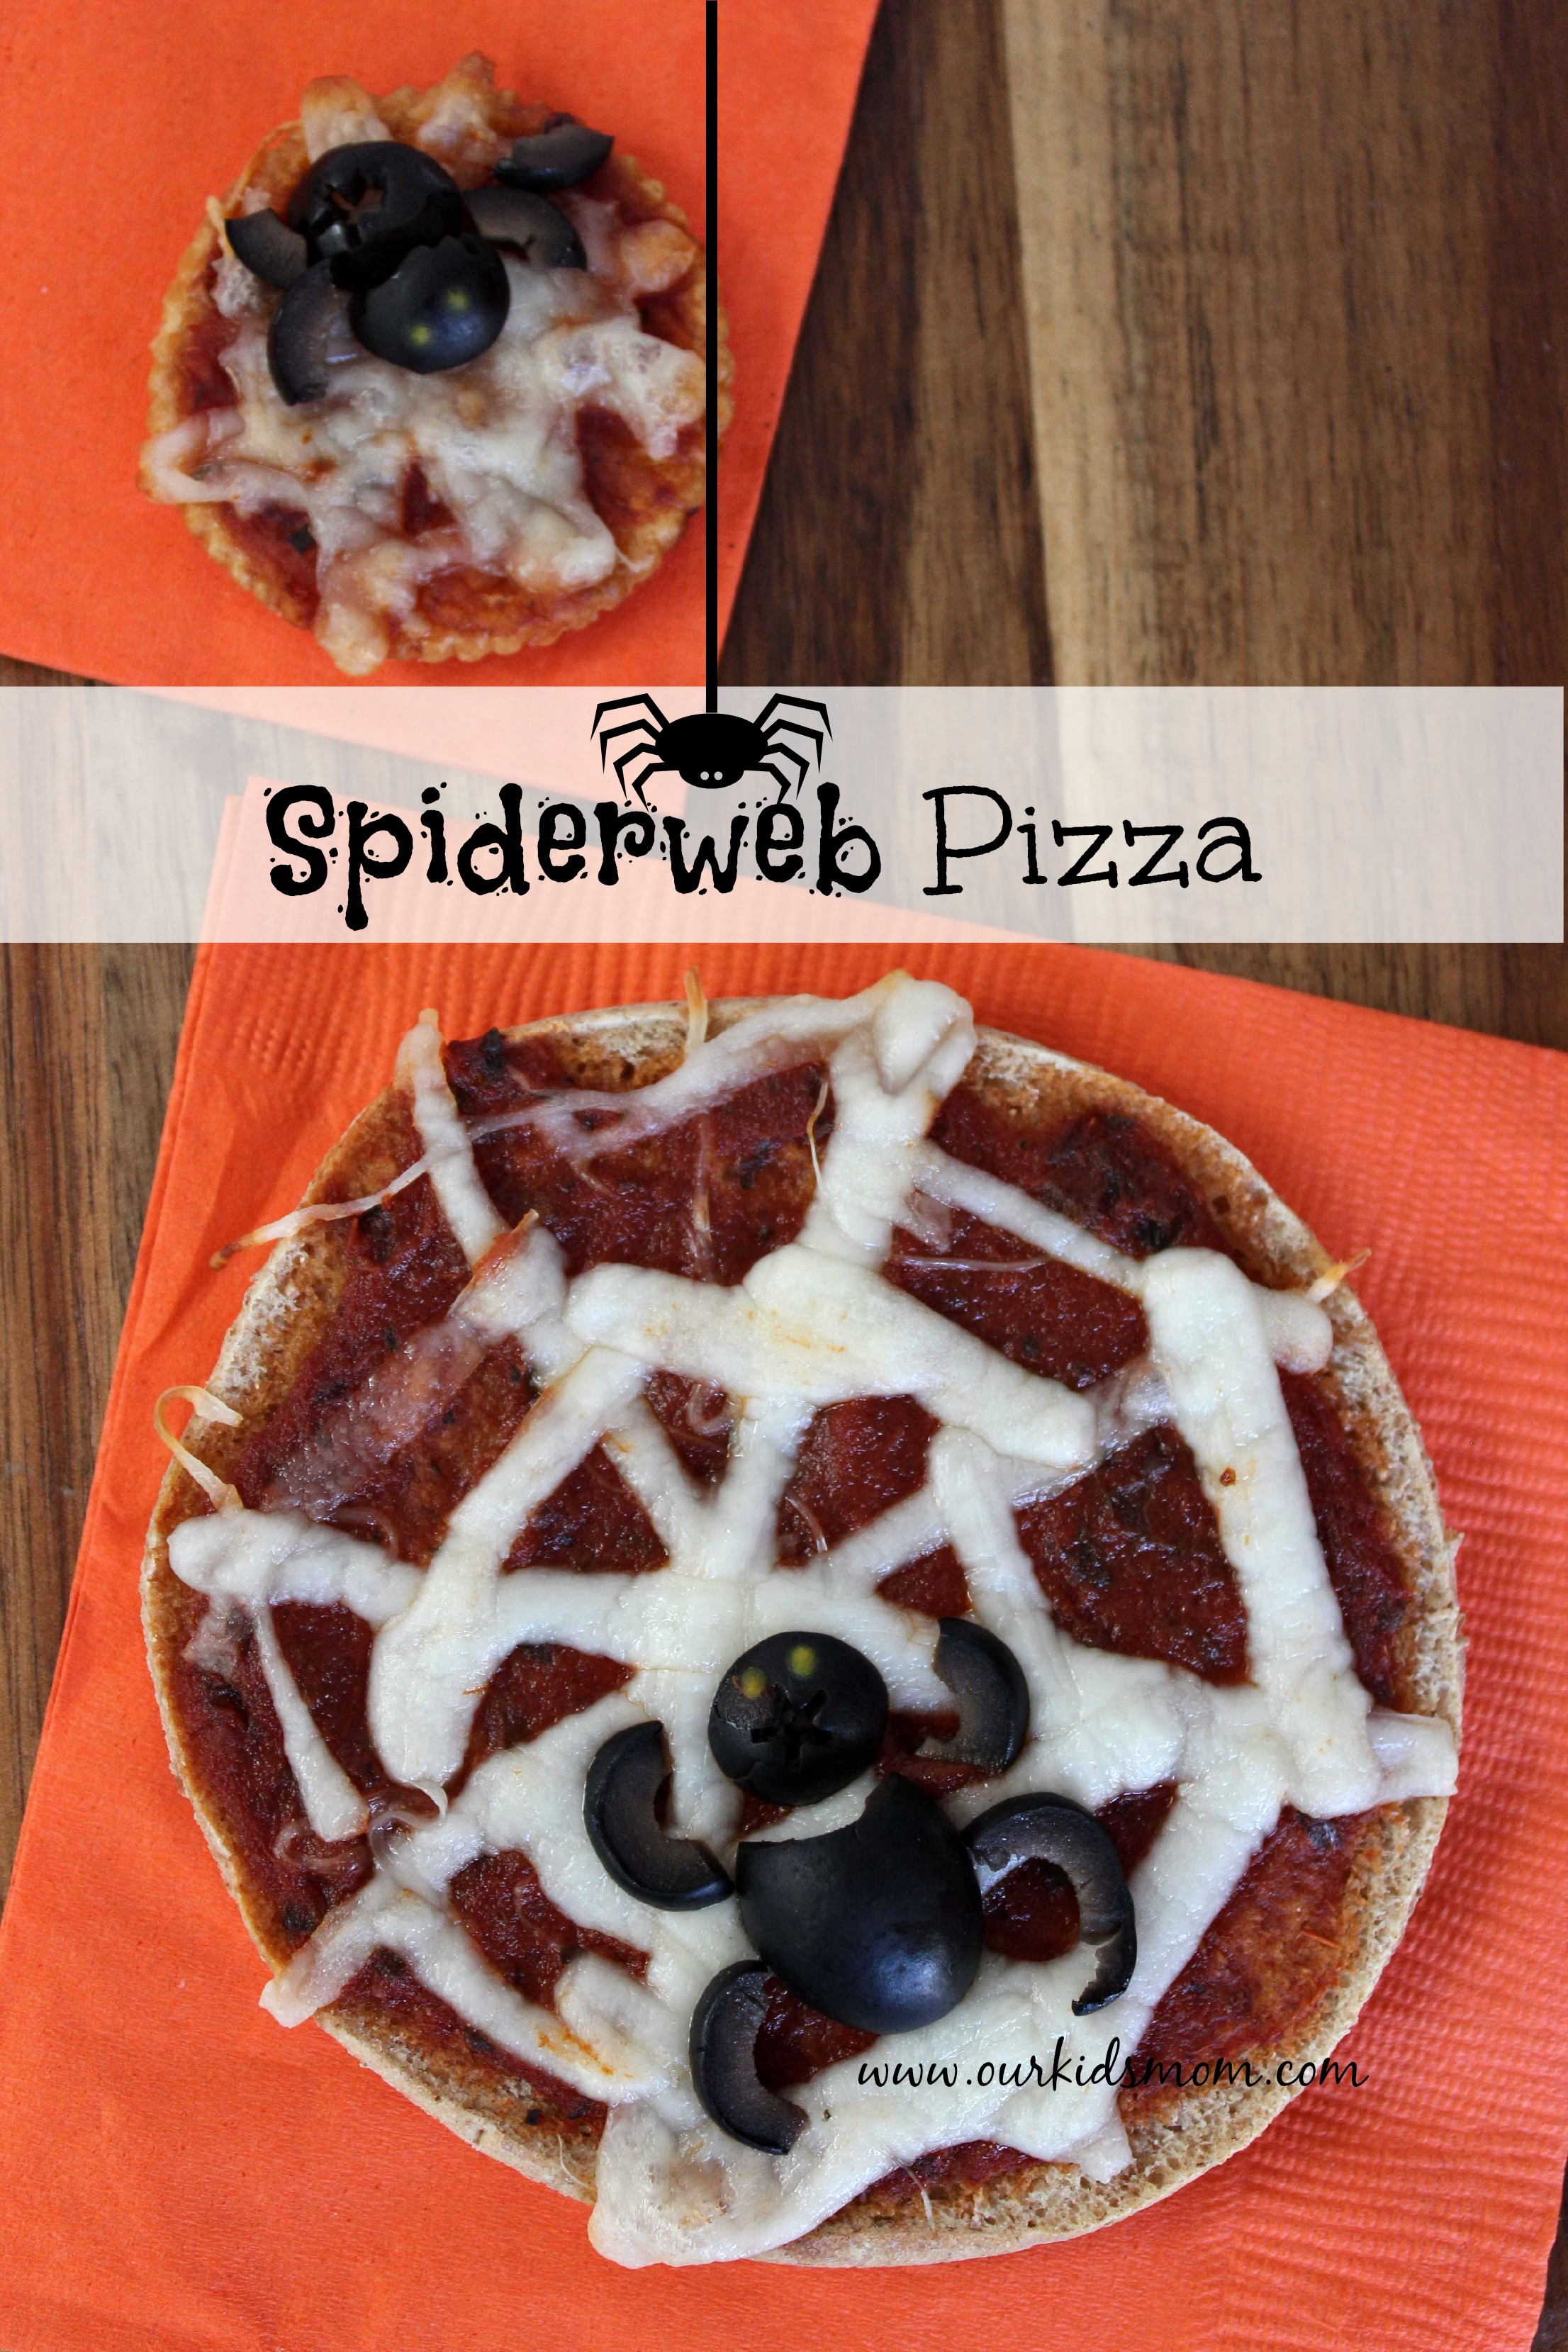 Spiderweb Pizza